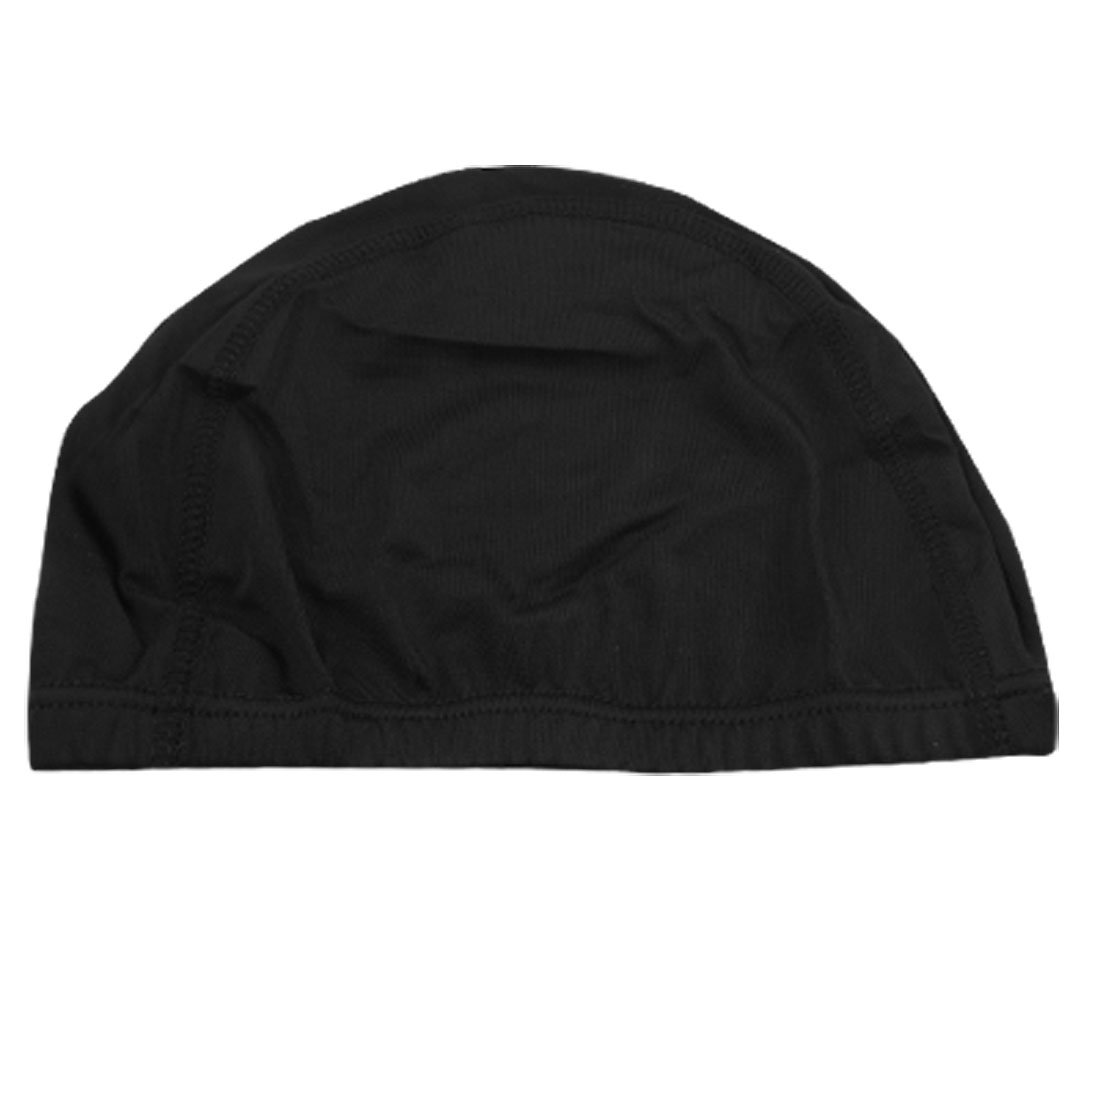 Woman Man Polyester Elastic Swimming Bathing Hat Cap Black,Free Shipping(China (Mainland))